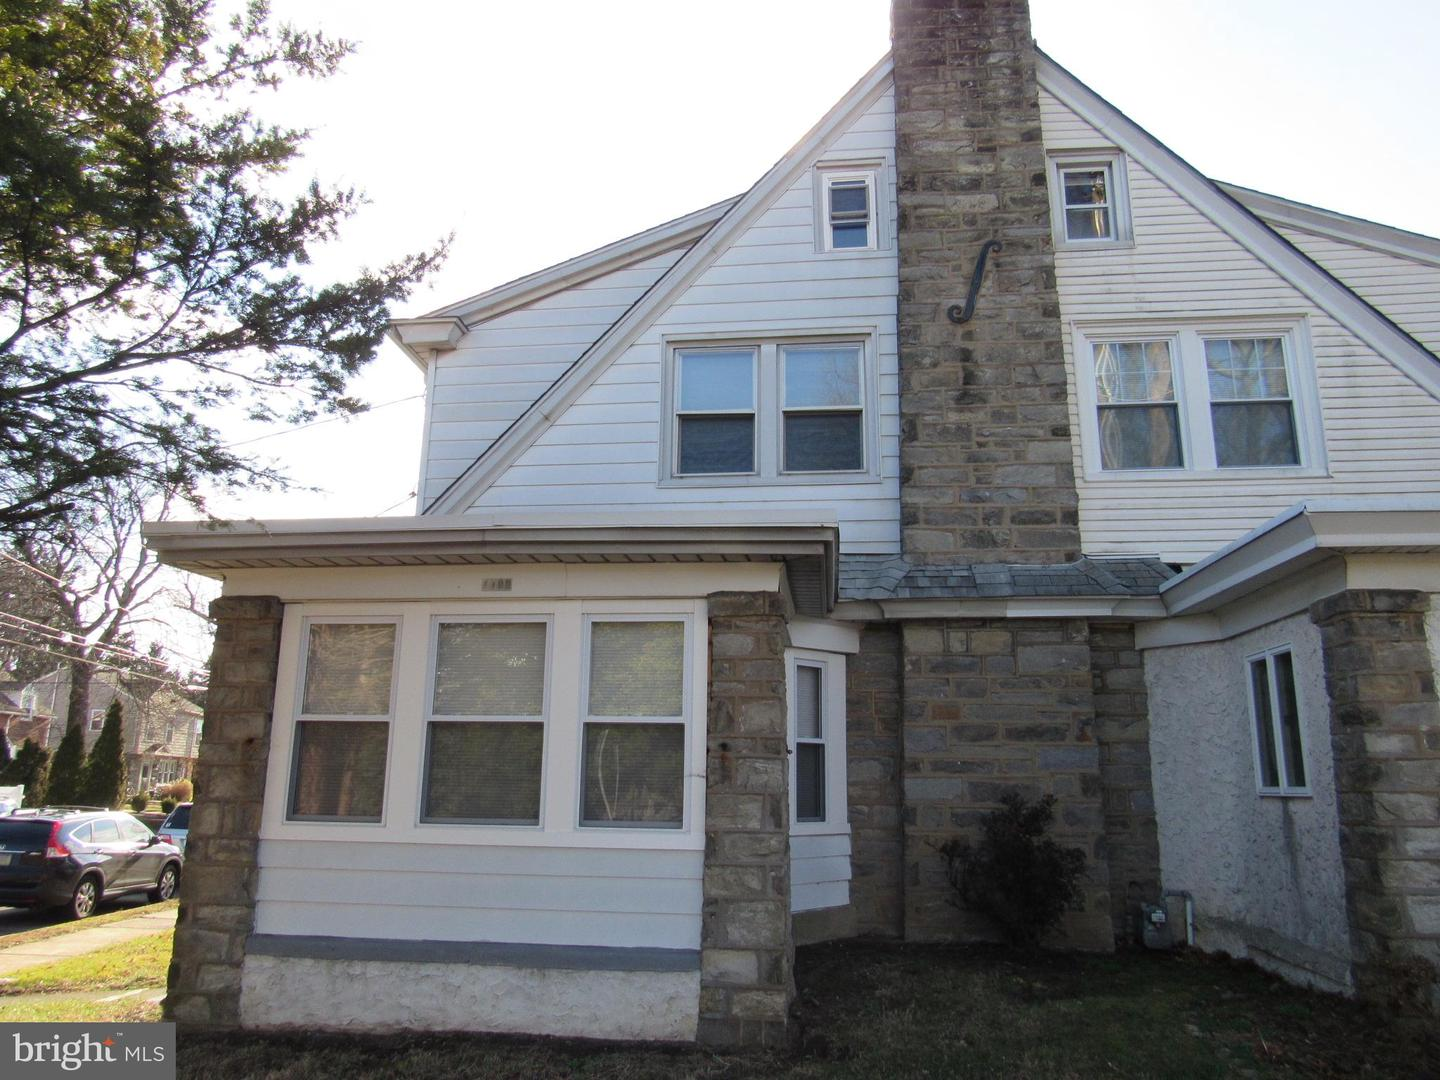 4700 State Road Drexel Hill , PA 19026